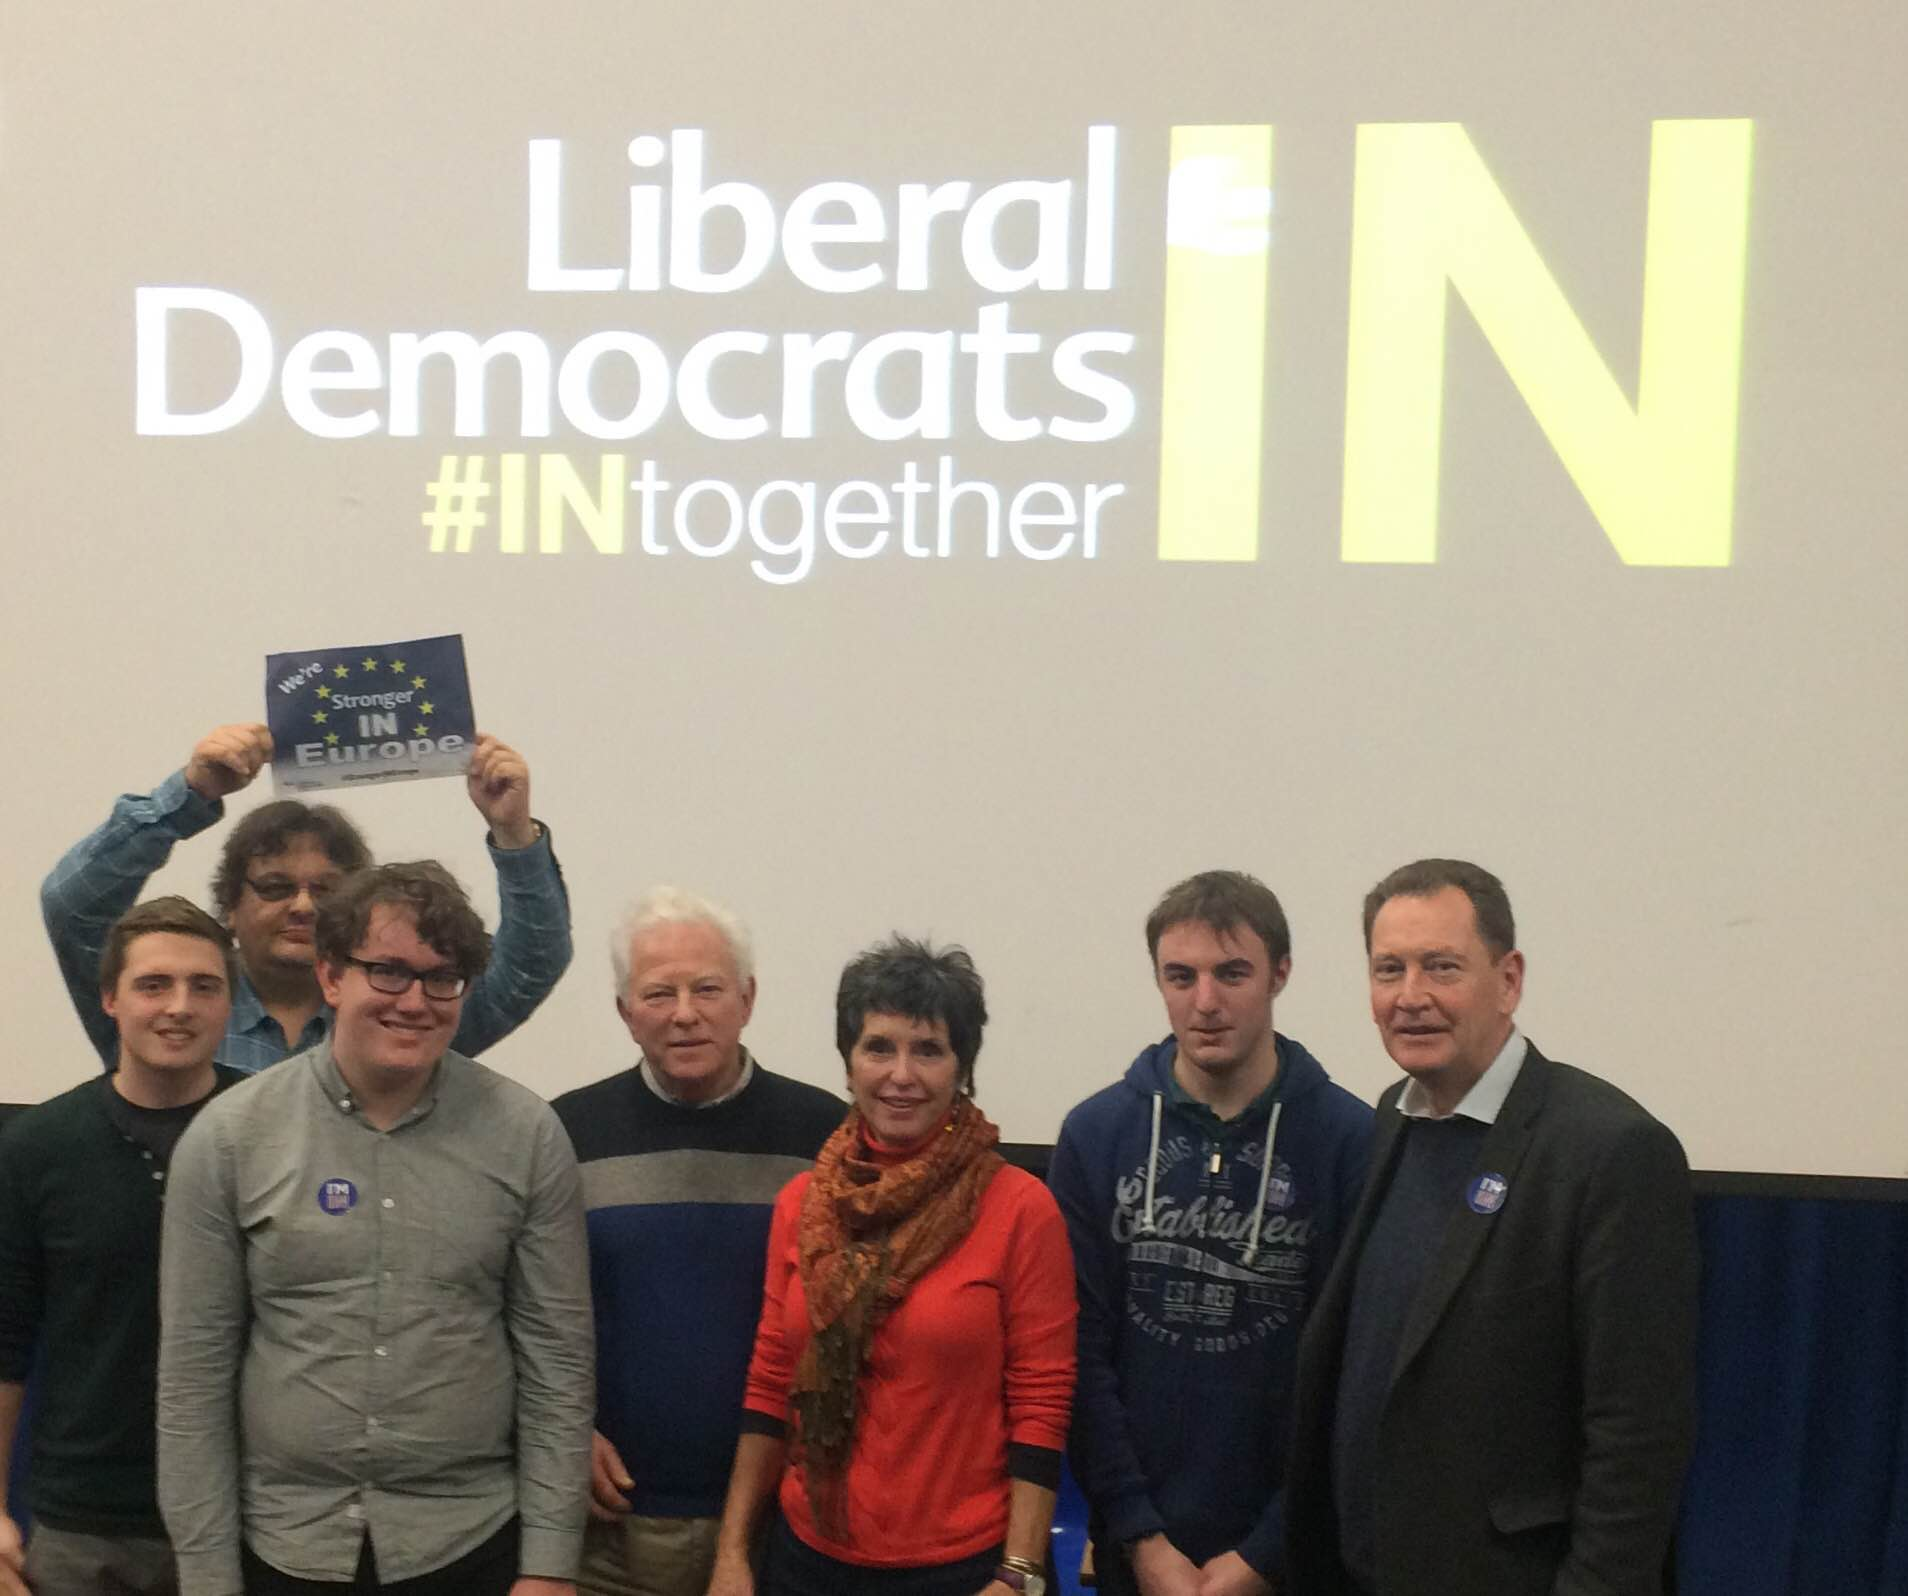 St Austell and Newquay Lib Dems attend South West #INtogether campaign launch